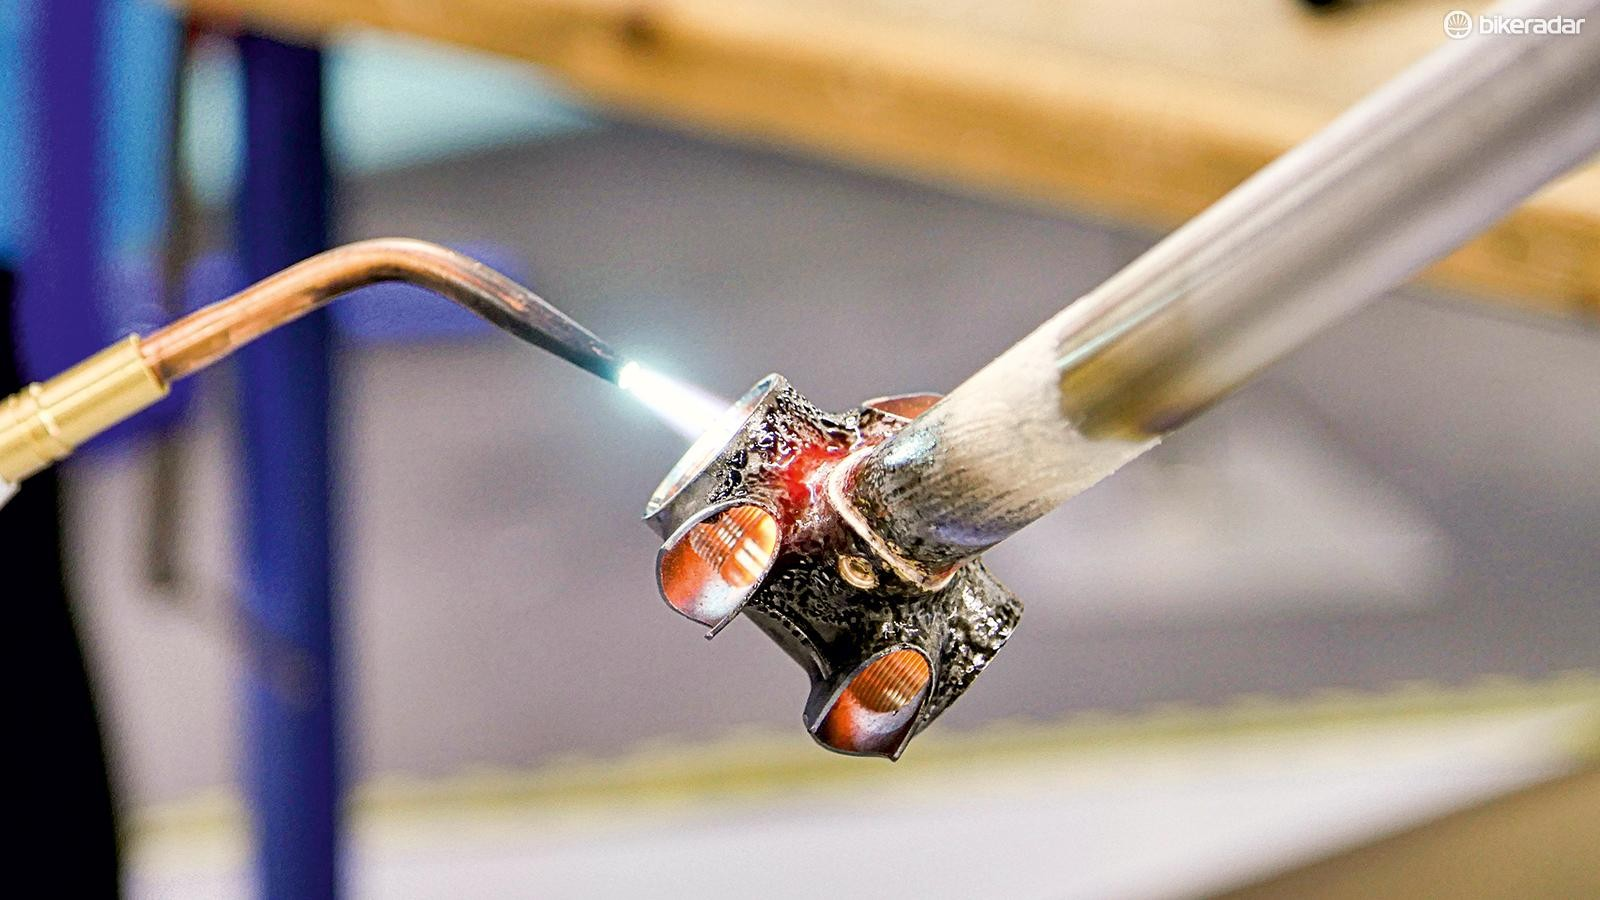 The students learn many skills including welding